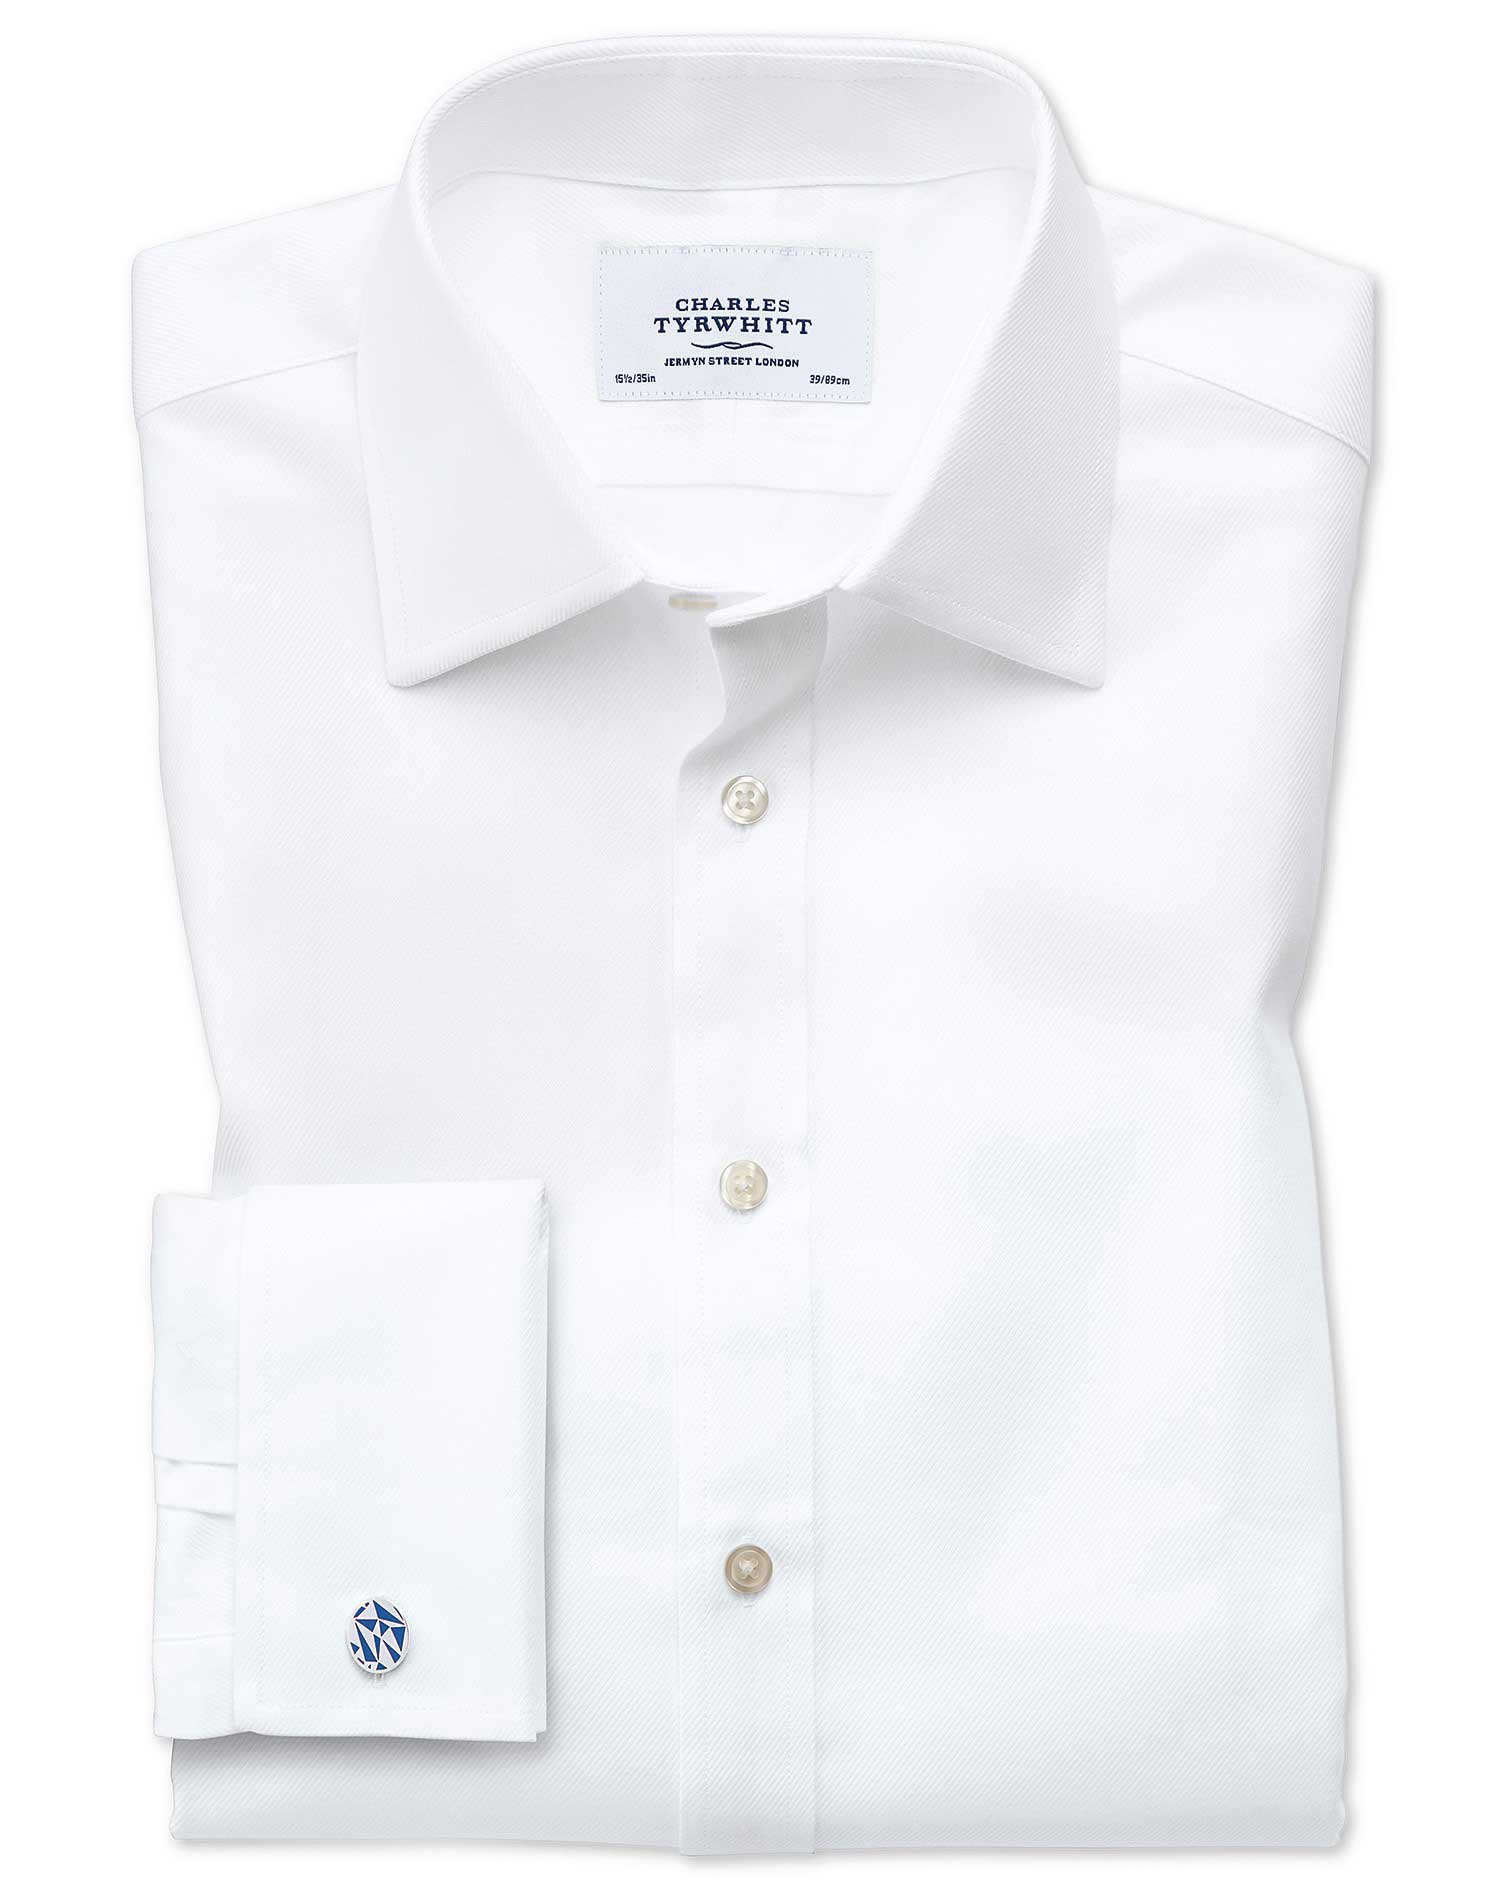 Slim Fit Egyptian Cotton Cavalry Twill White Formal Shirt Double Cuff Size 16.5/34 by Charles Tyrwhi